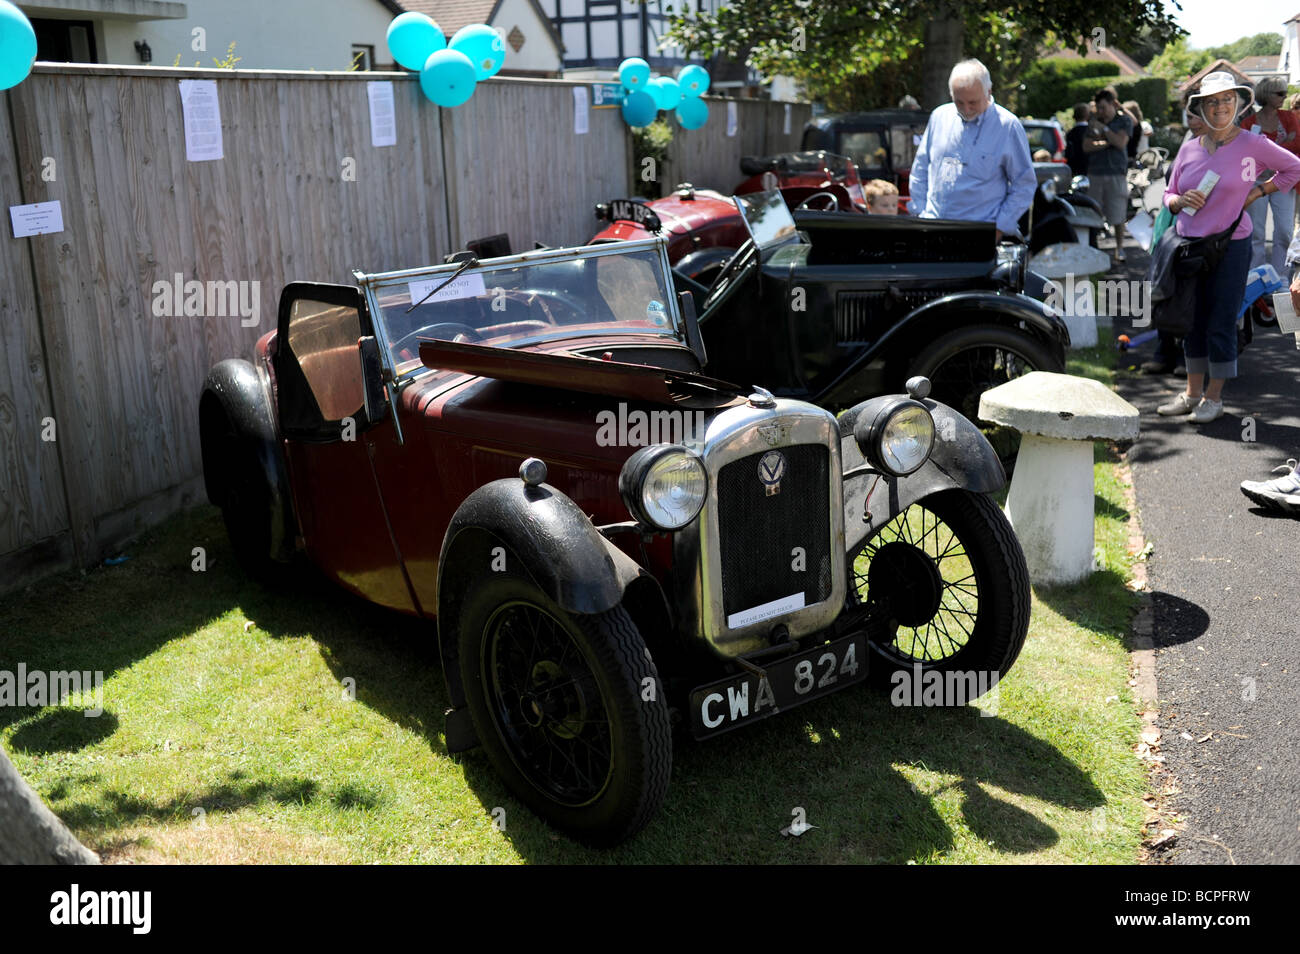 Old Austin cars on display Stock Photo: 25081613 - Alamy